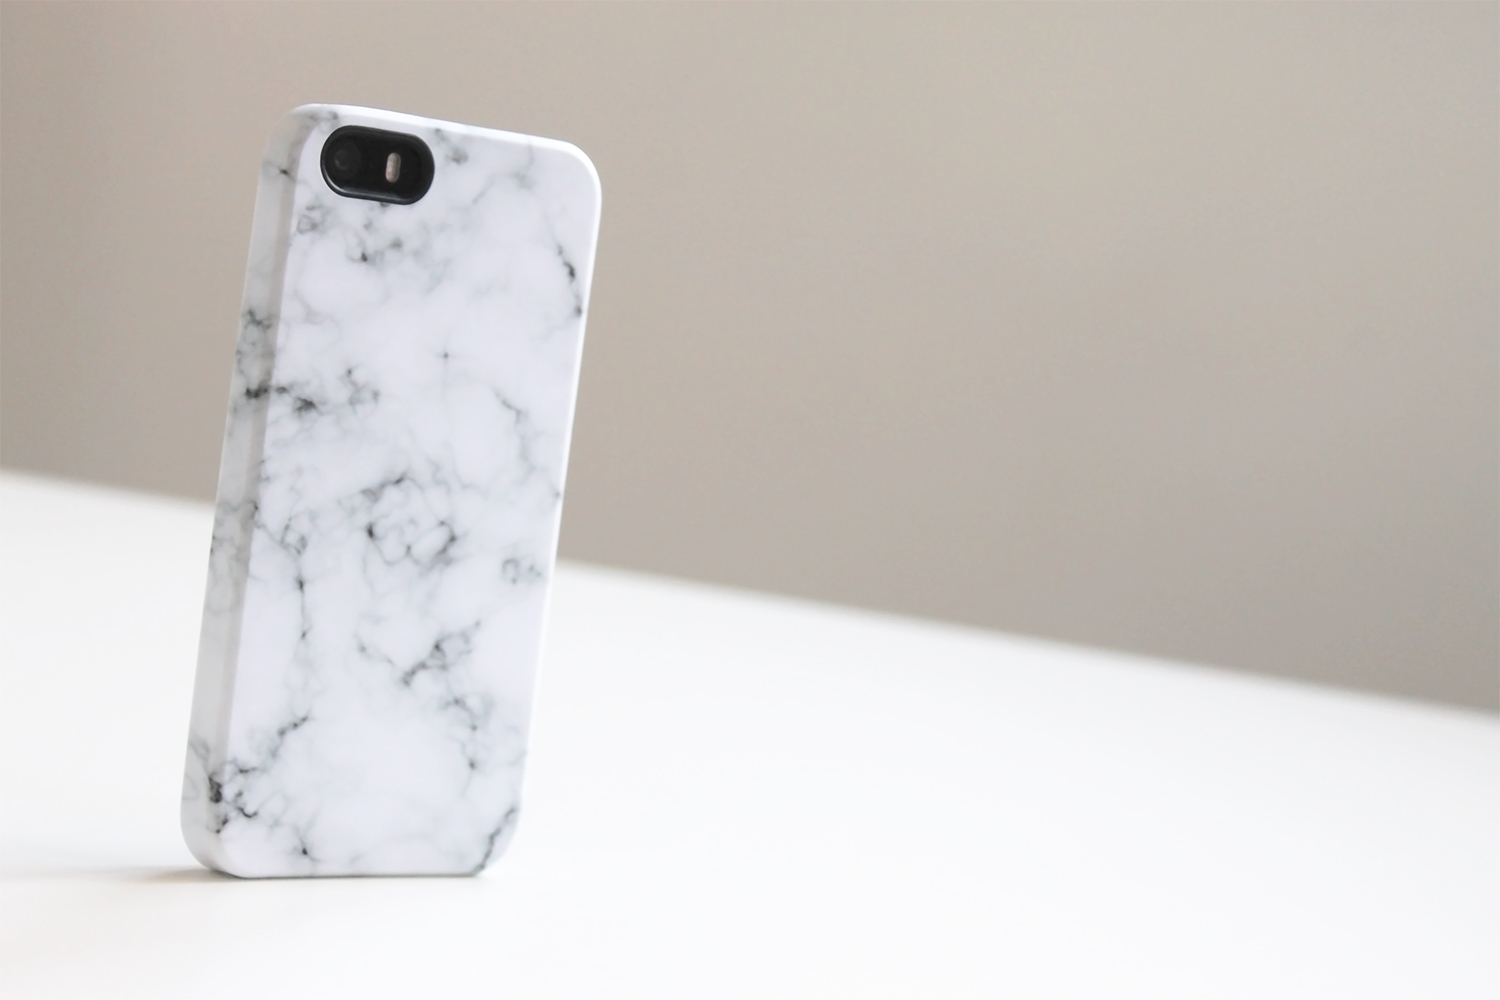 blog-mode-homme-strasbourg-paris-lifestyle-blogueur-fashion-blogger-french-caseable-coque-iphone-maurice-style-5